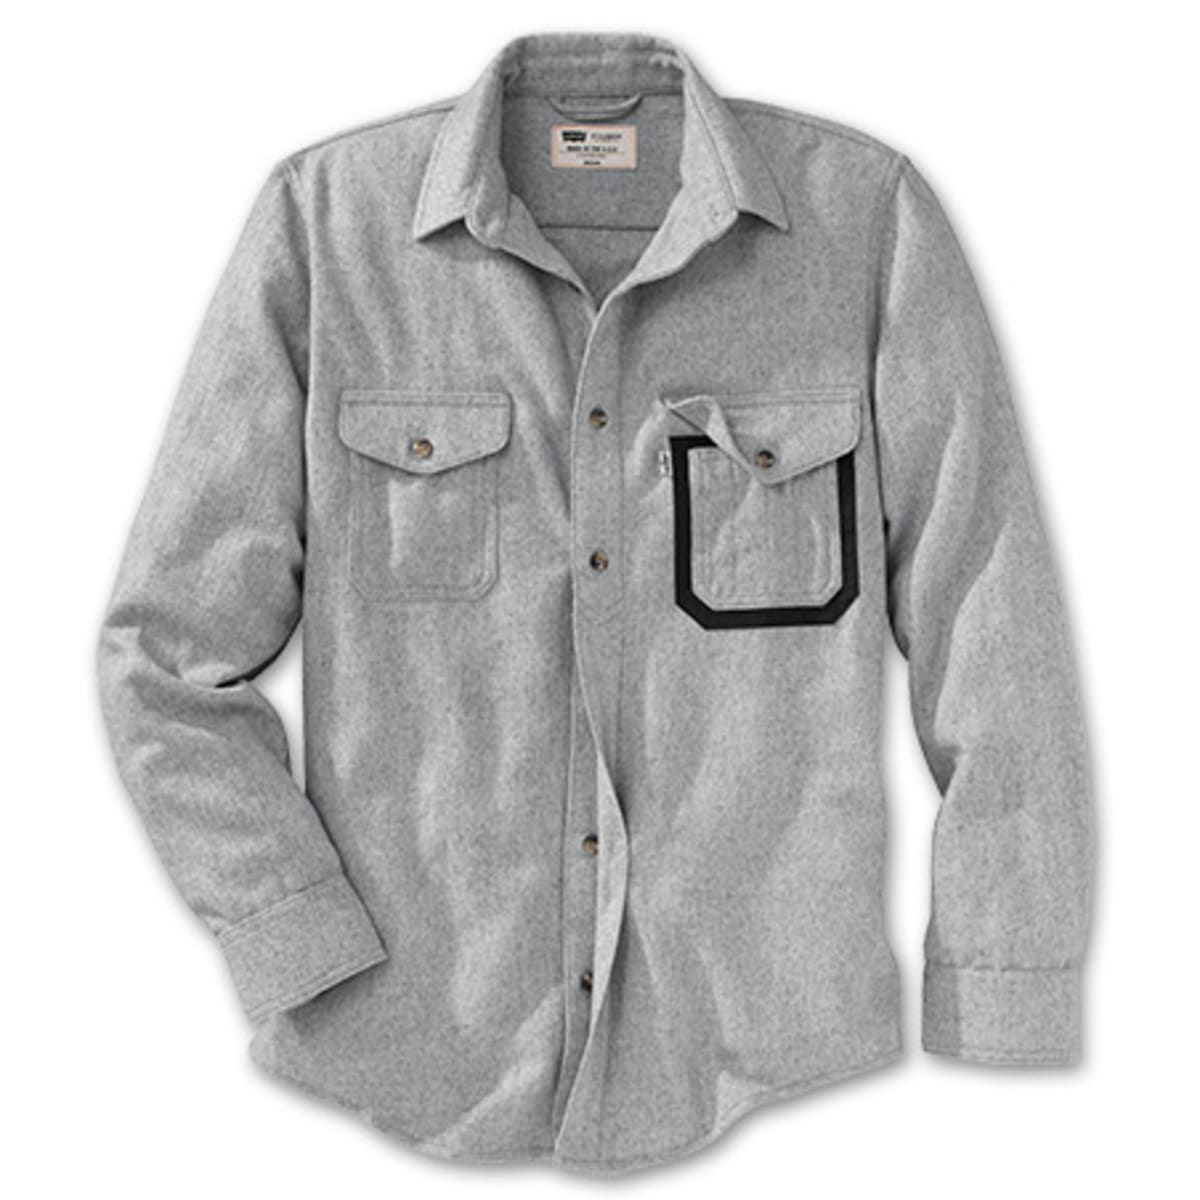 filson and levi 39 s fishing shirt will keep you warm while